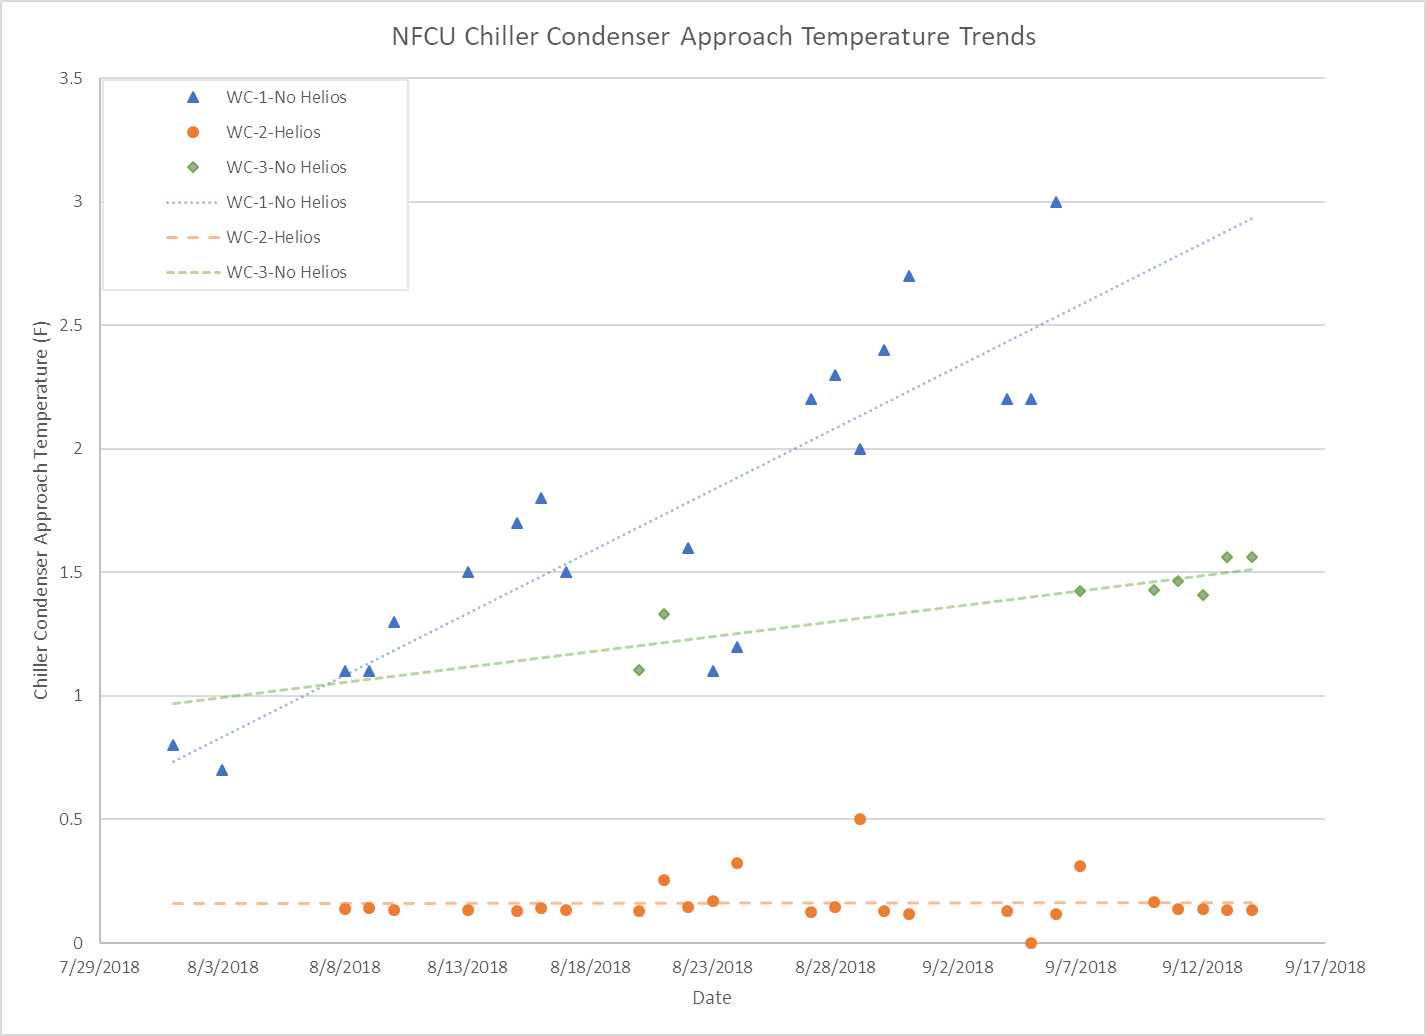 Chiller Condenser Approach Temperature Trends chart